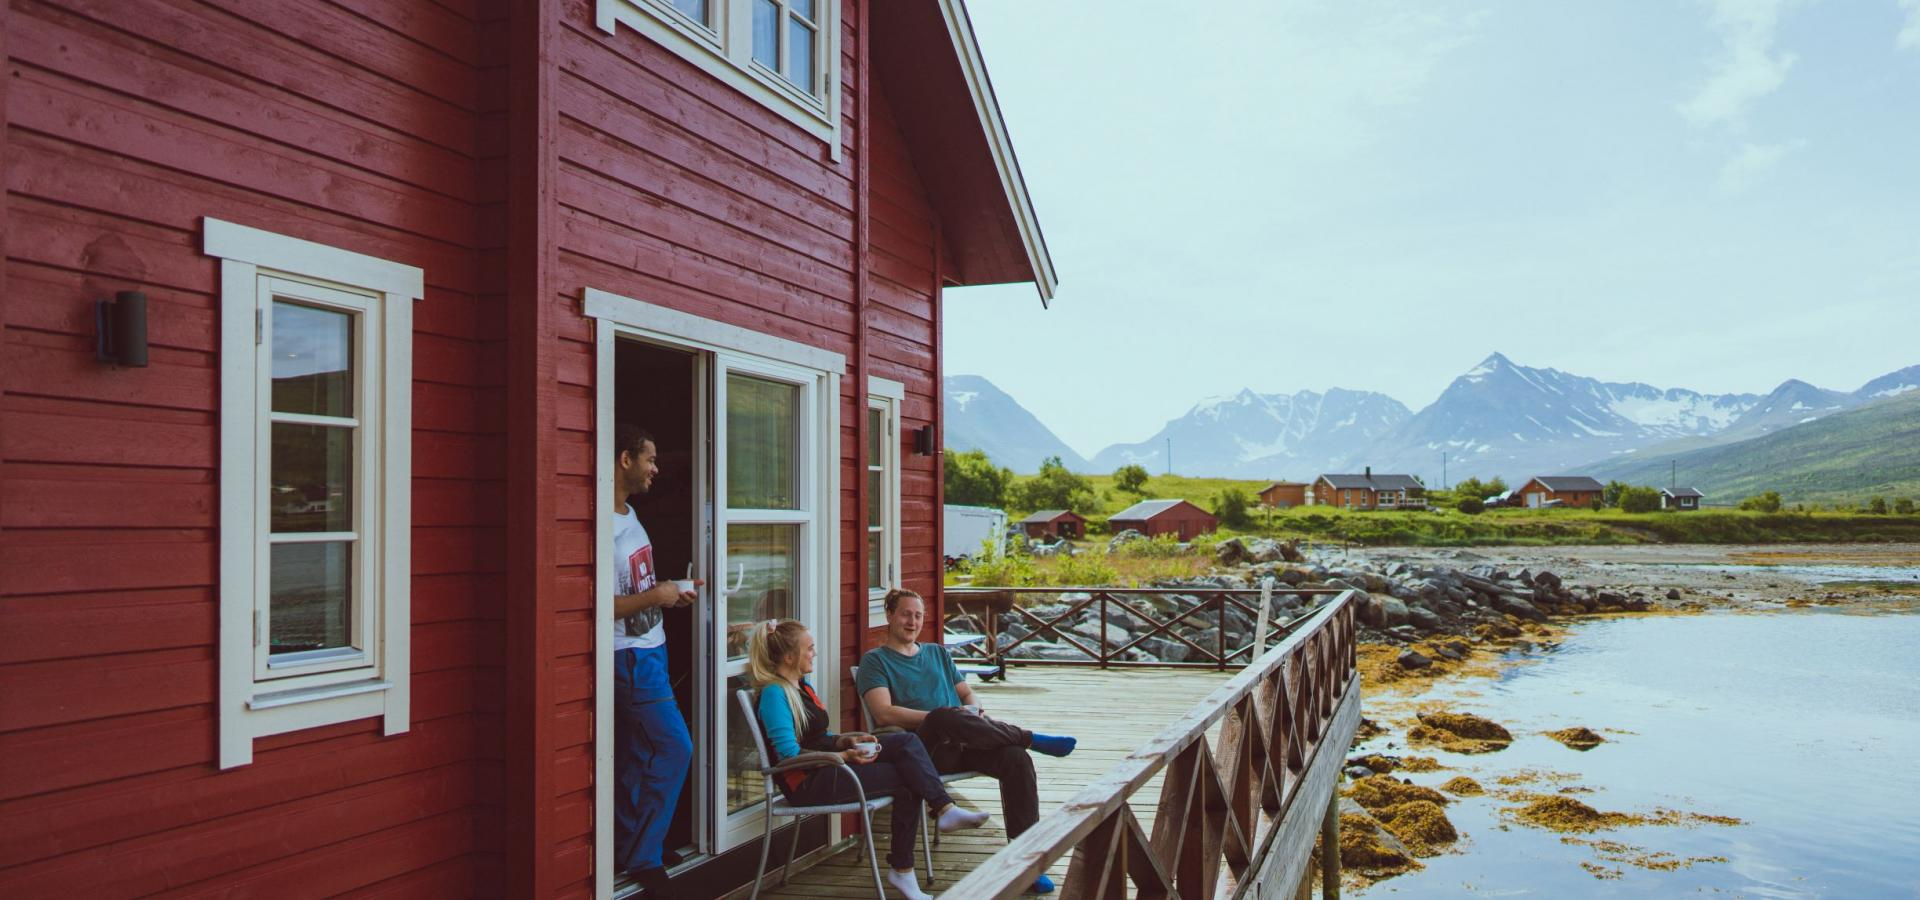 A red cabin by the fjord and 3 persons enjoying life outside on the pier, mountains in the background